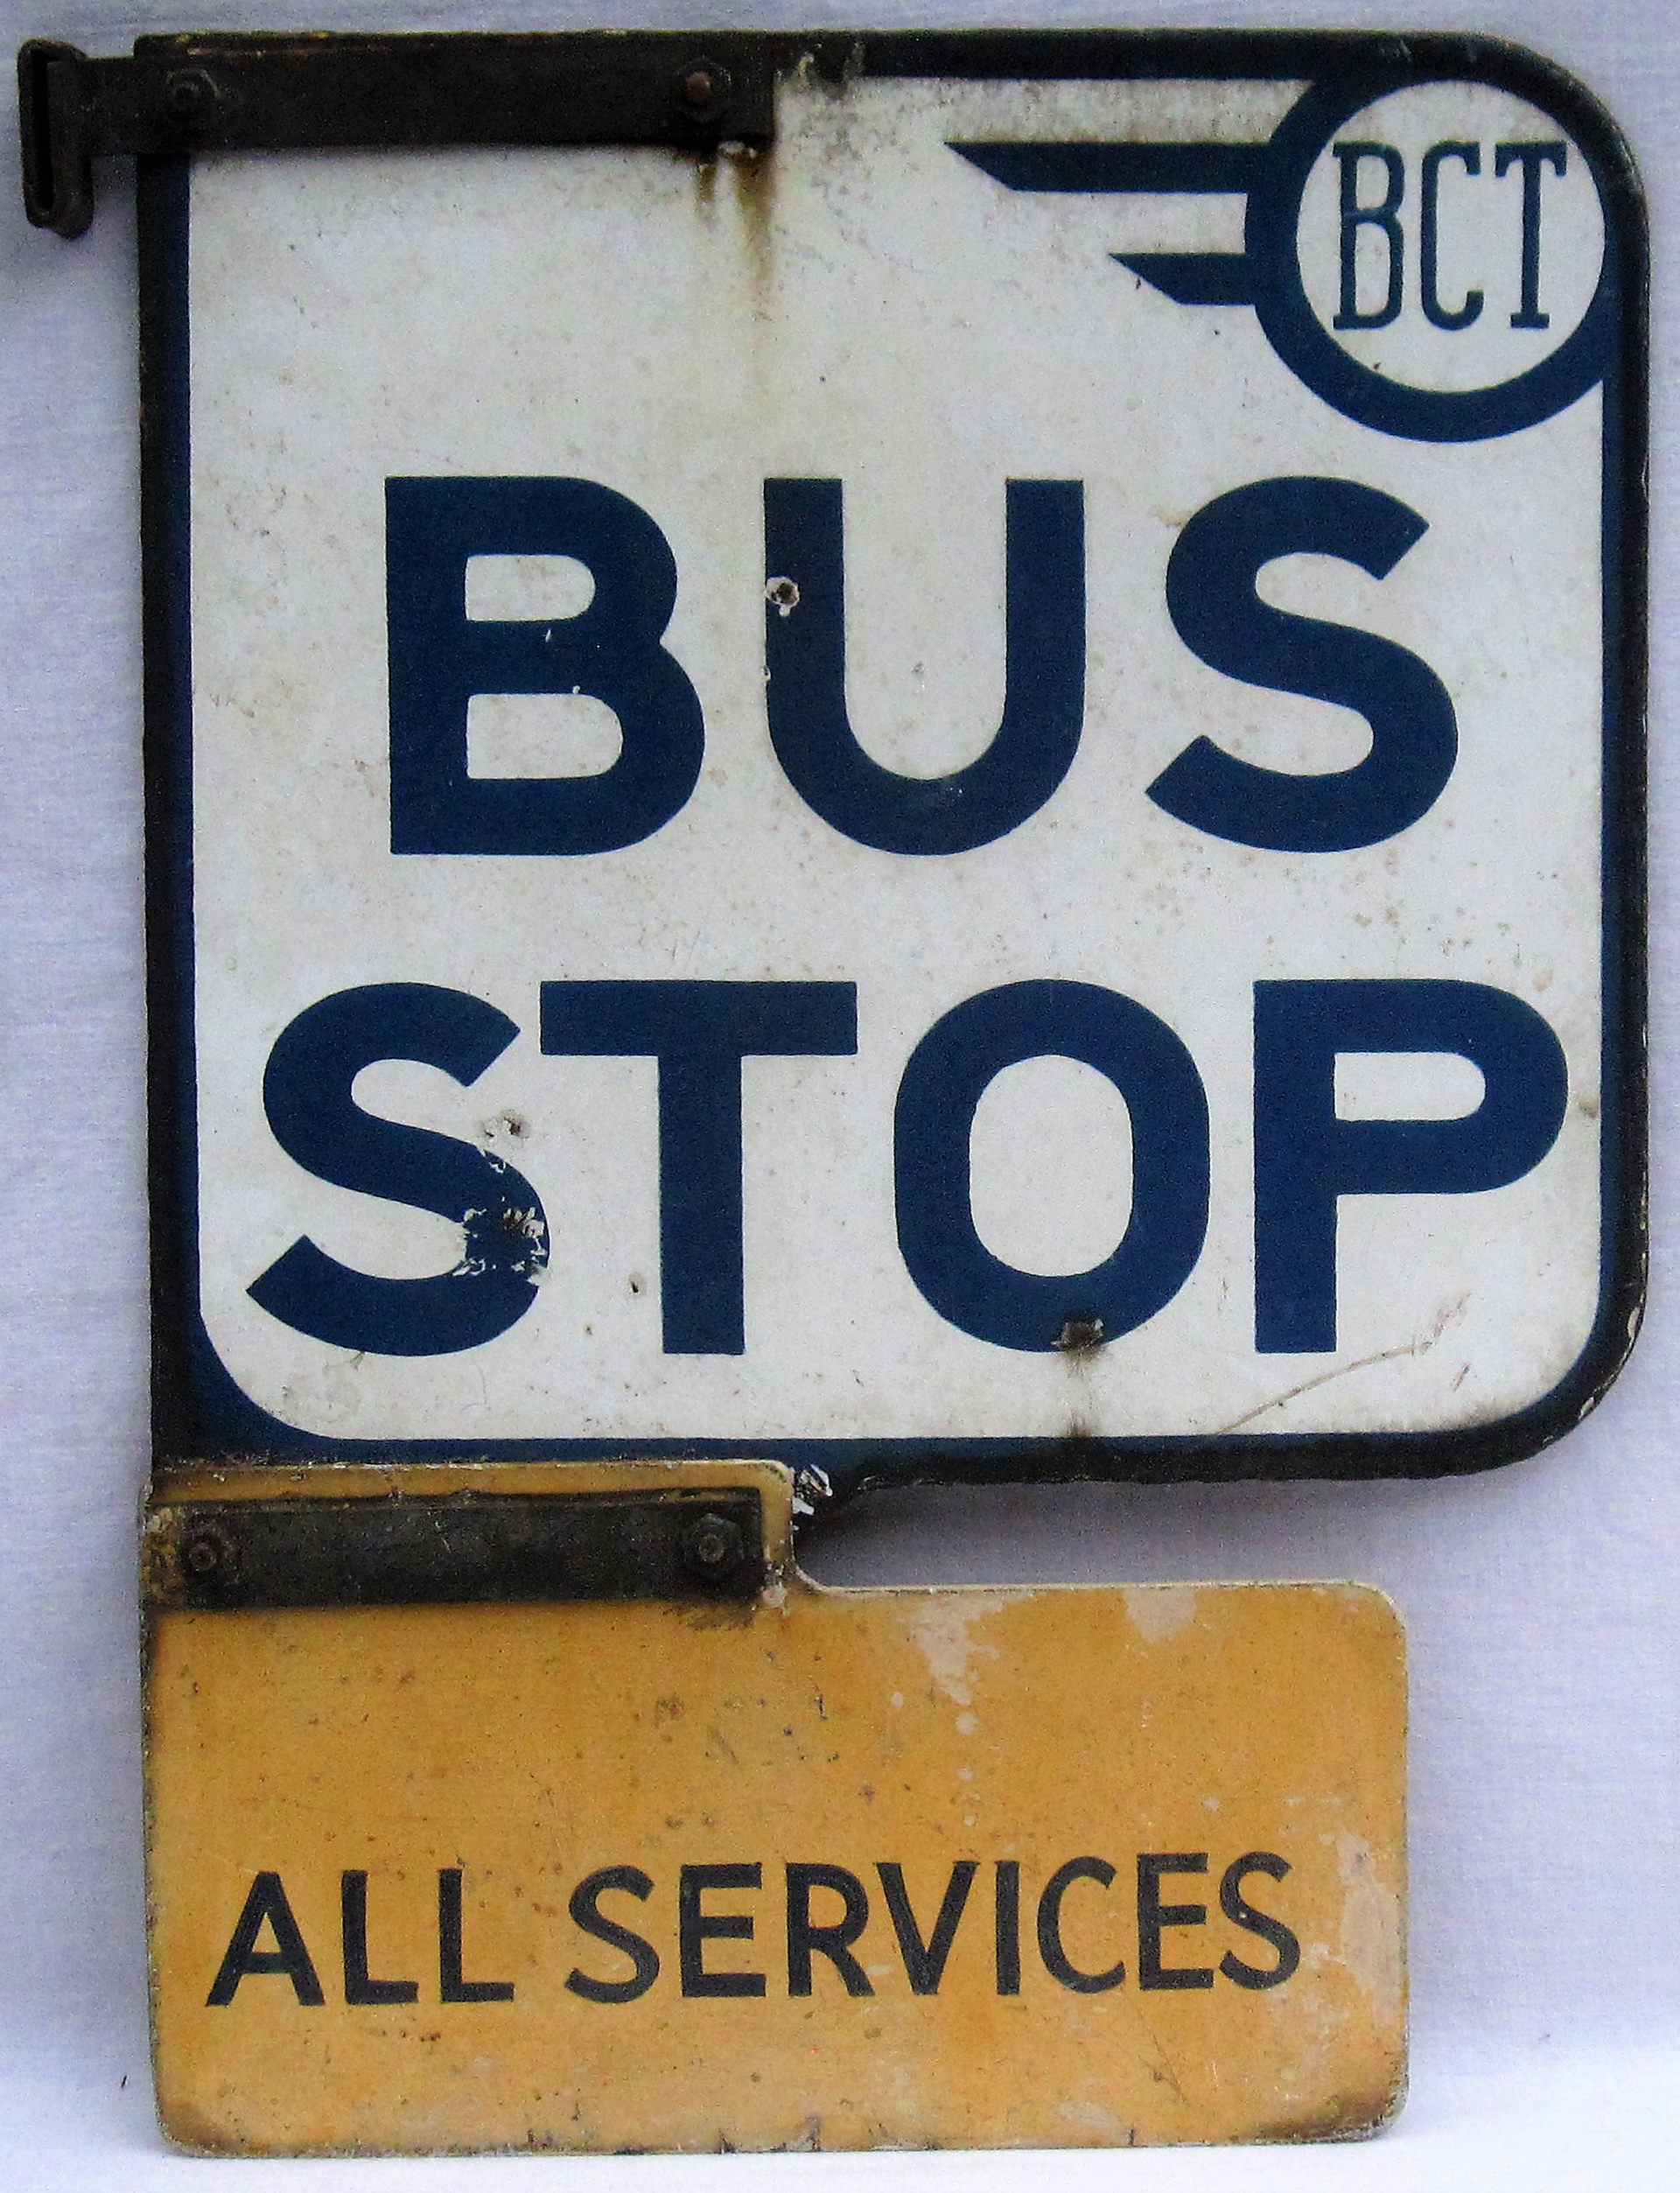 Double Sided enamel Bus Stop Sign. BCT BUS STOP with lower section ALL SERVICES. Ex BRADFORD CITY